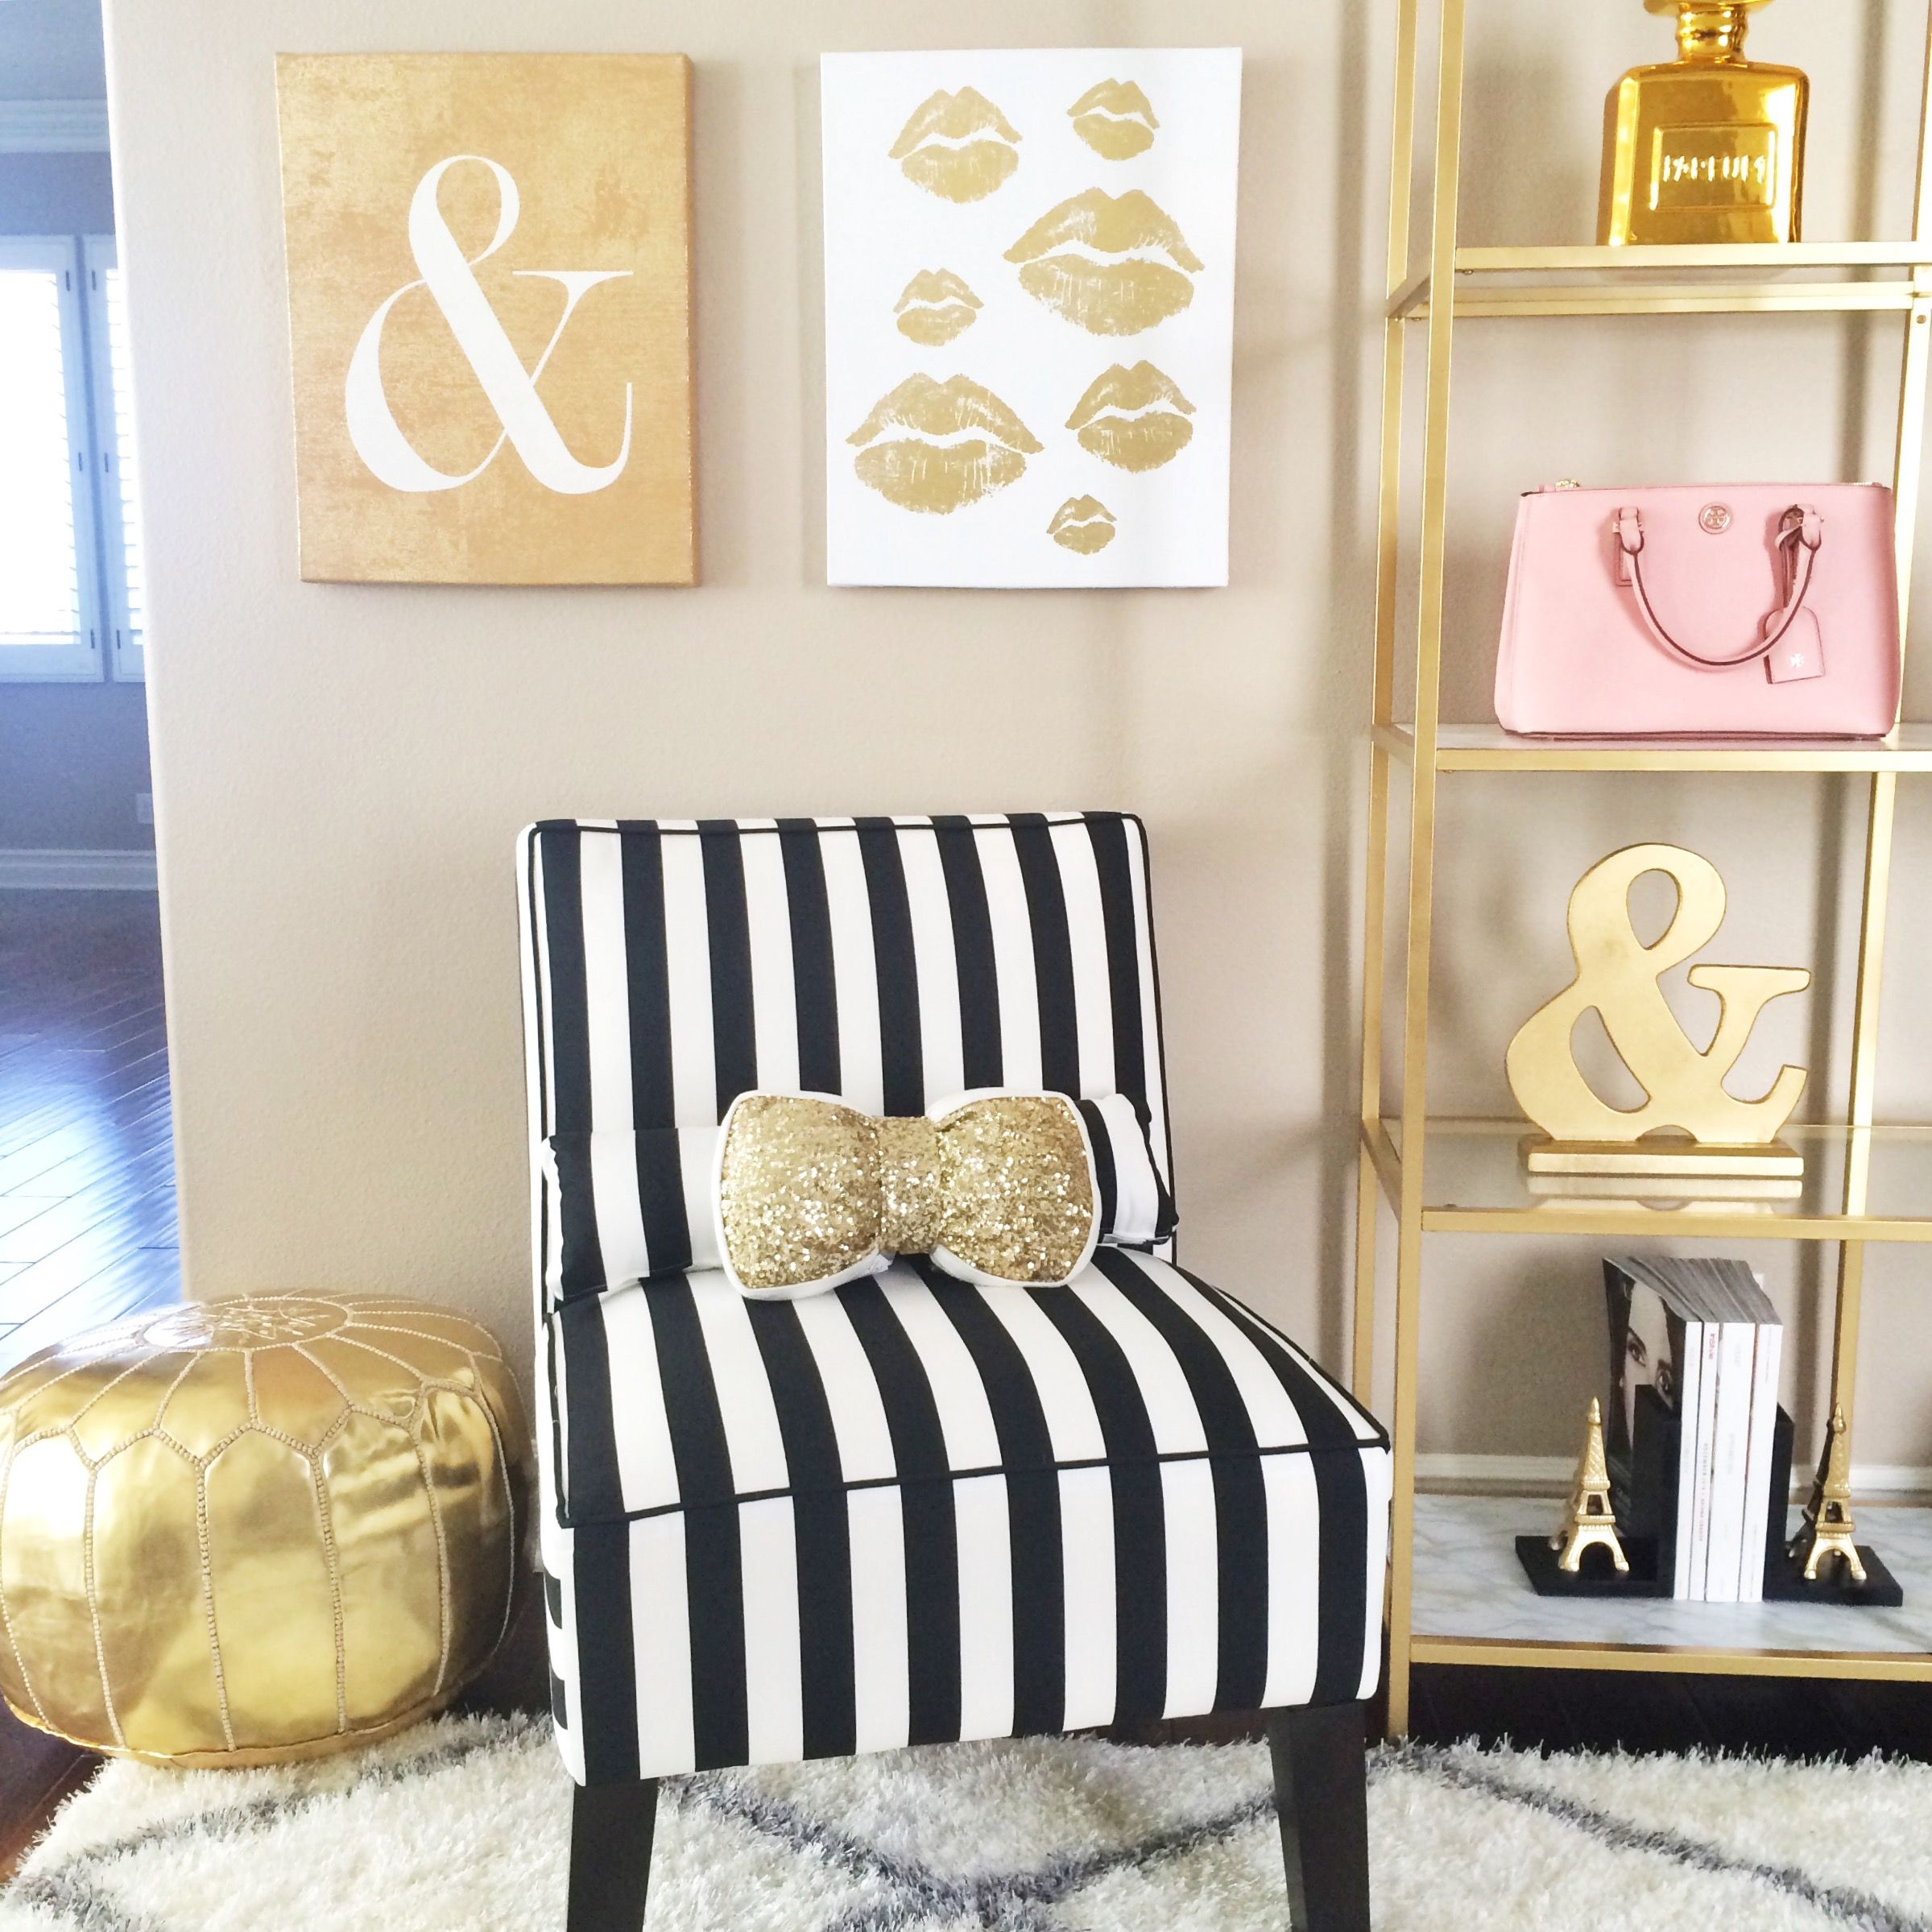 Gold Themed Bedroom Ideas Creative Striped Armless Black And White Chair Gold Pouf Sequin Bow .